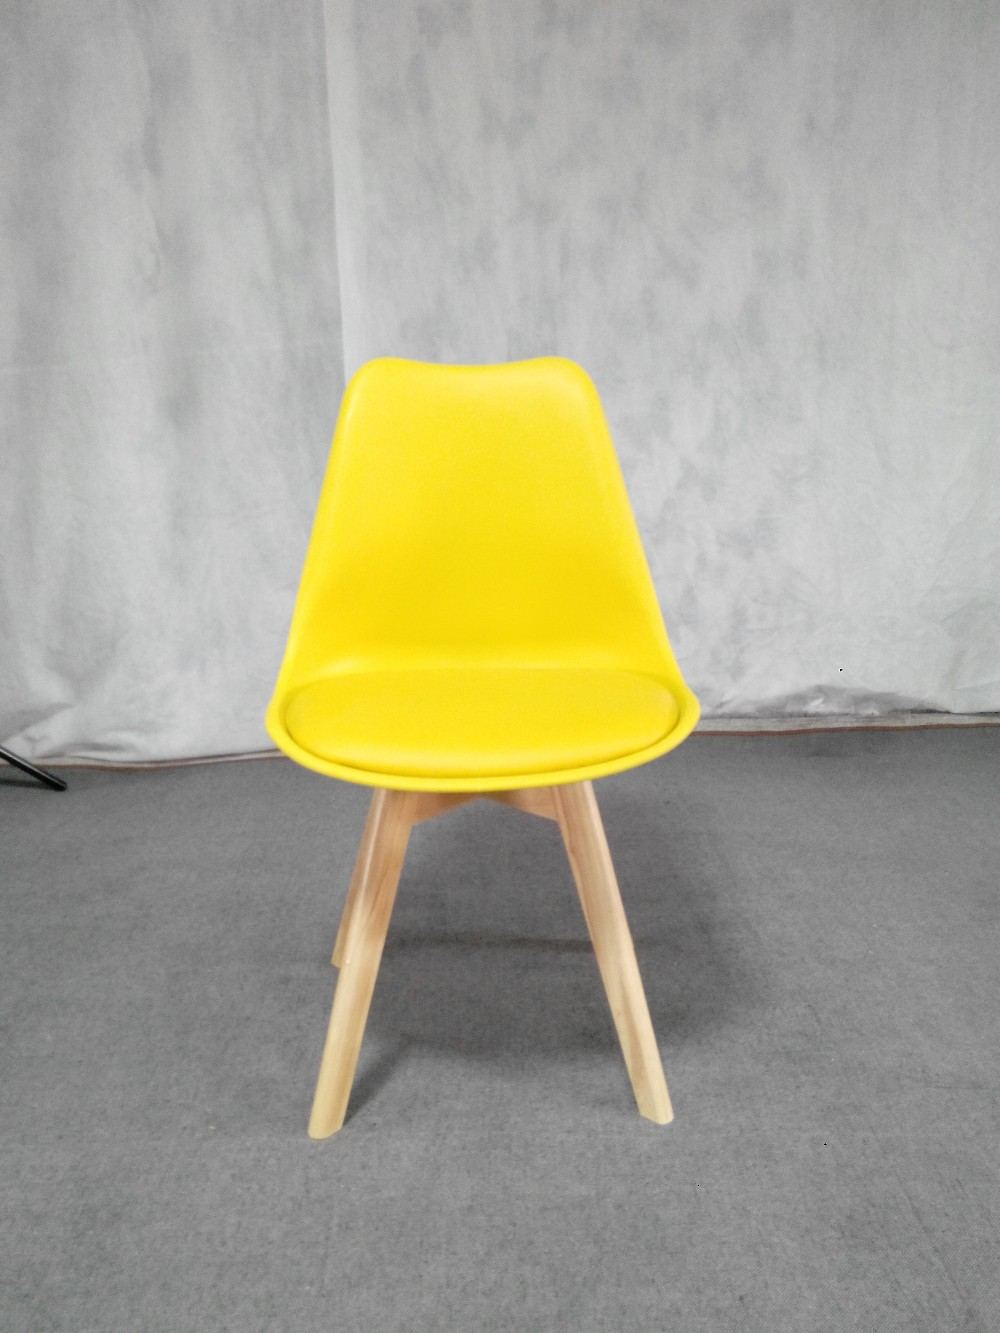 Factory Price Cheap Colorful Modern Plastic Chair Wood